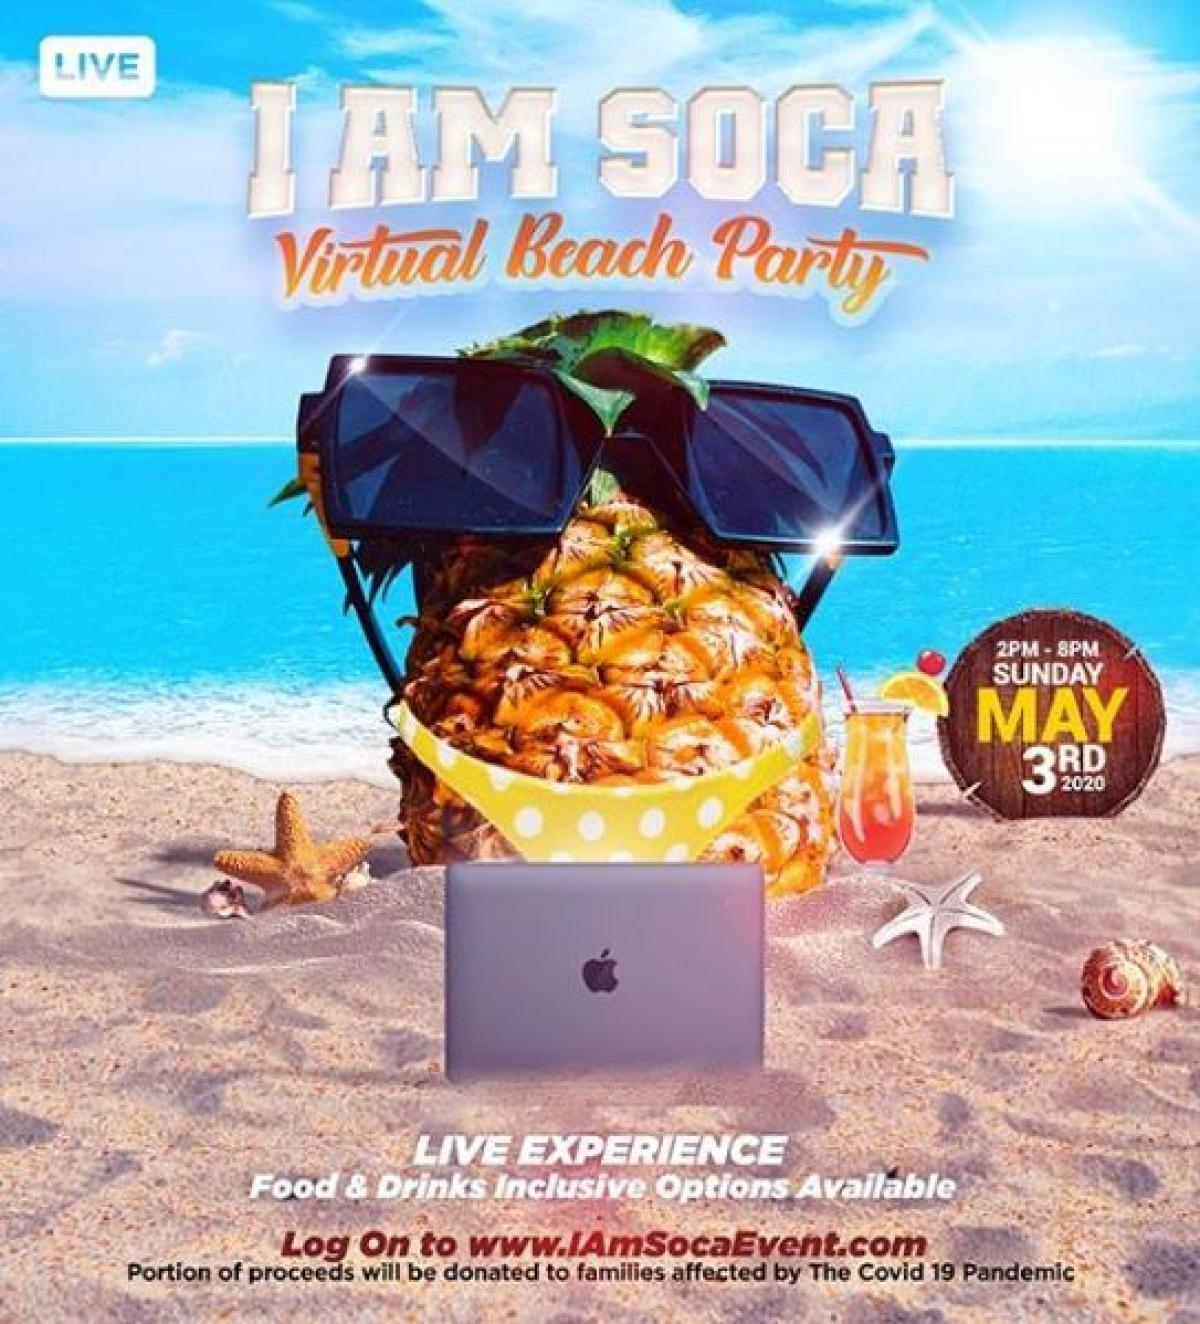 I Am Soca Virtual Beach Party flyer or graphic.